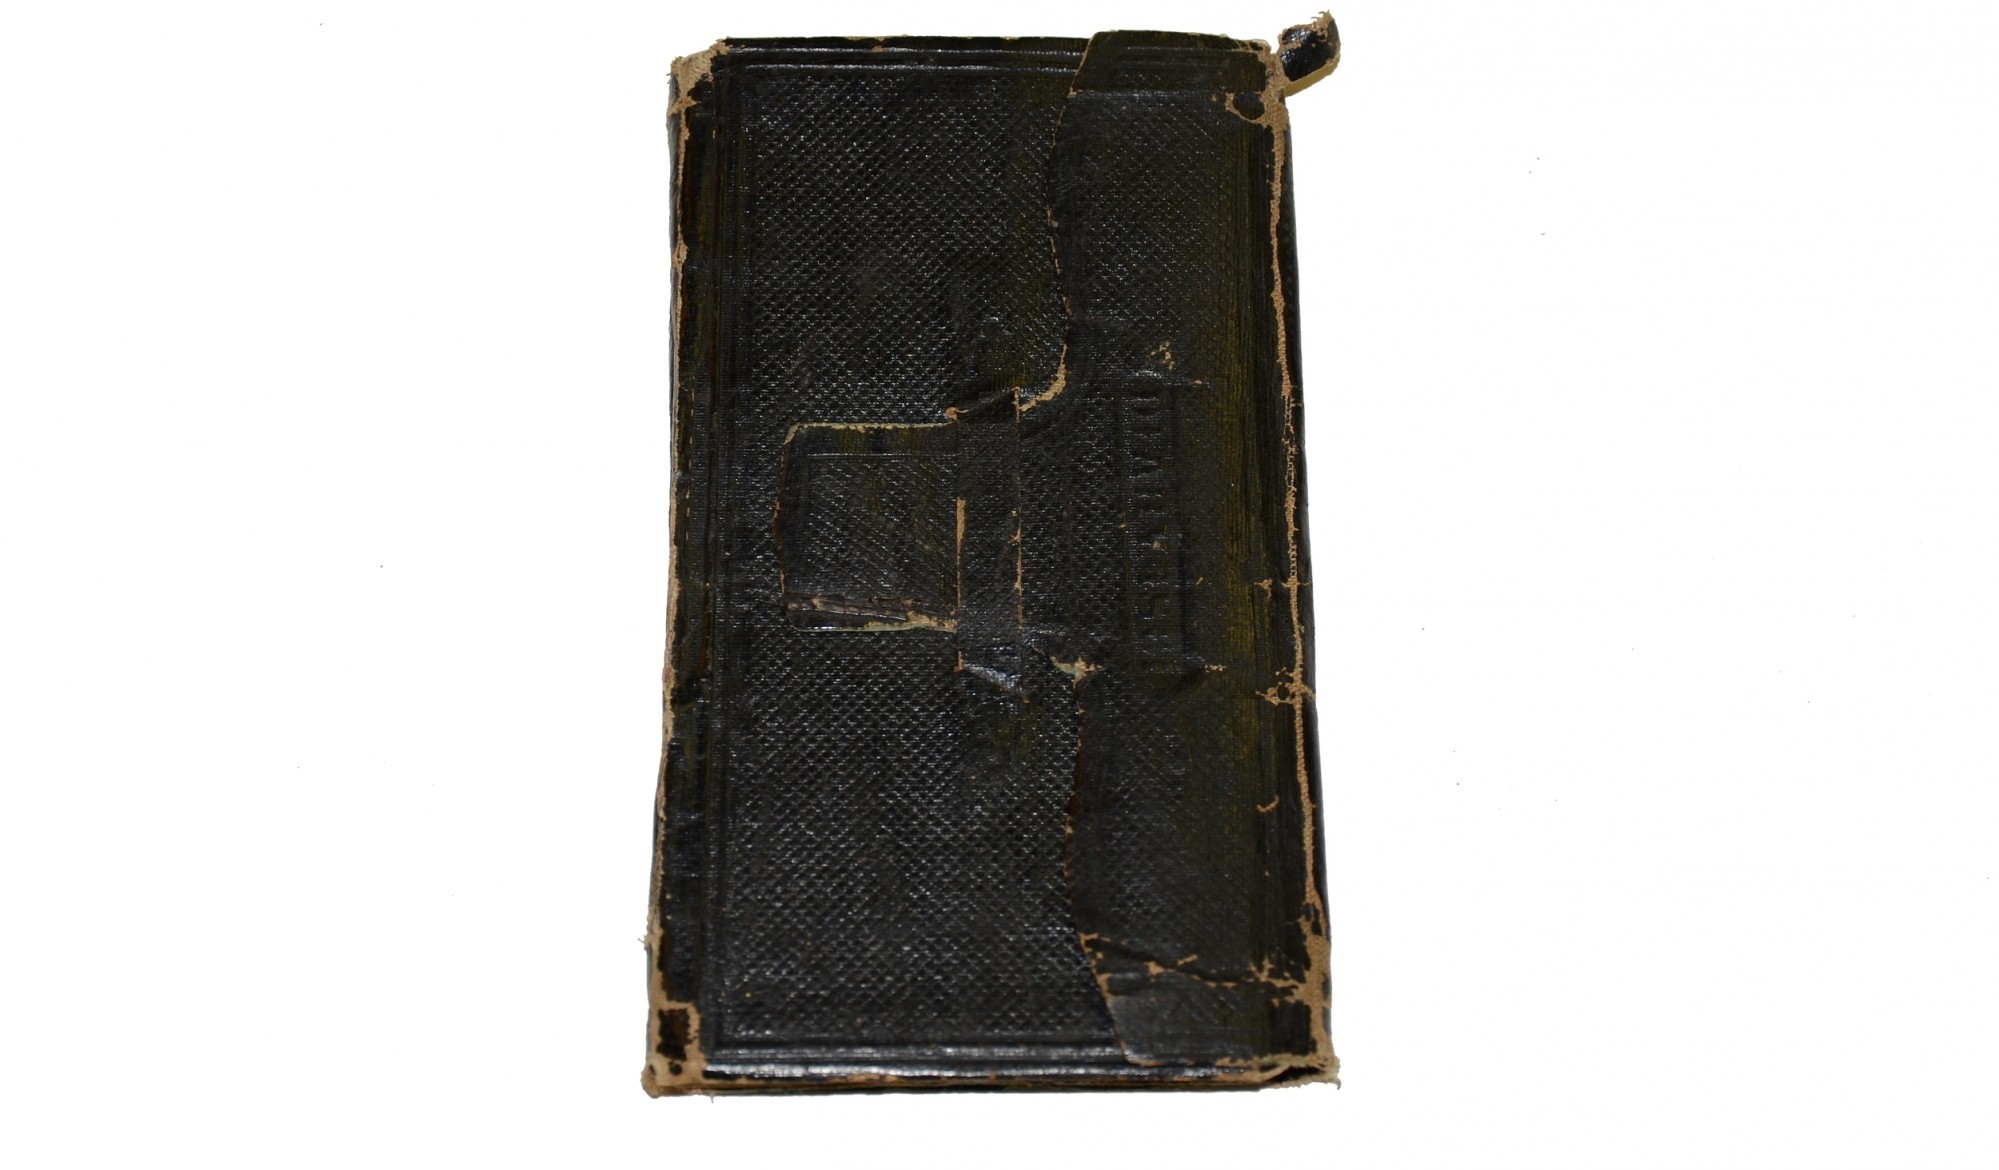 1861 DIARY KEPT BY AN UNIDENTIFIED ILLINOIS PREACHER